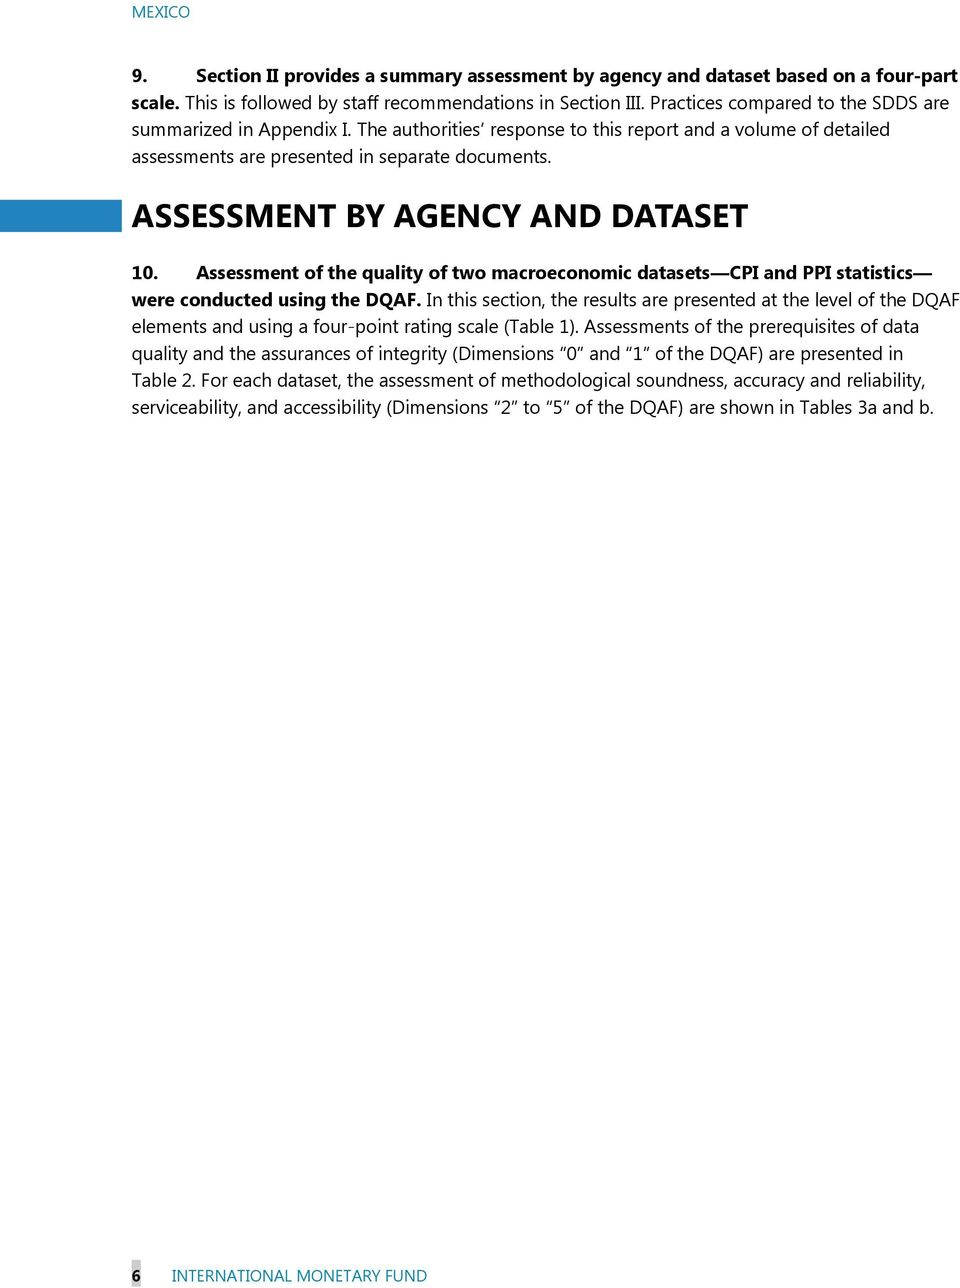 ASSESSMENT BY AGENCY AND DATASET 10. Assessment of the quality of two macroeconomic datasets CPI and PPI statistics were conducted using the DQAF.